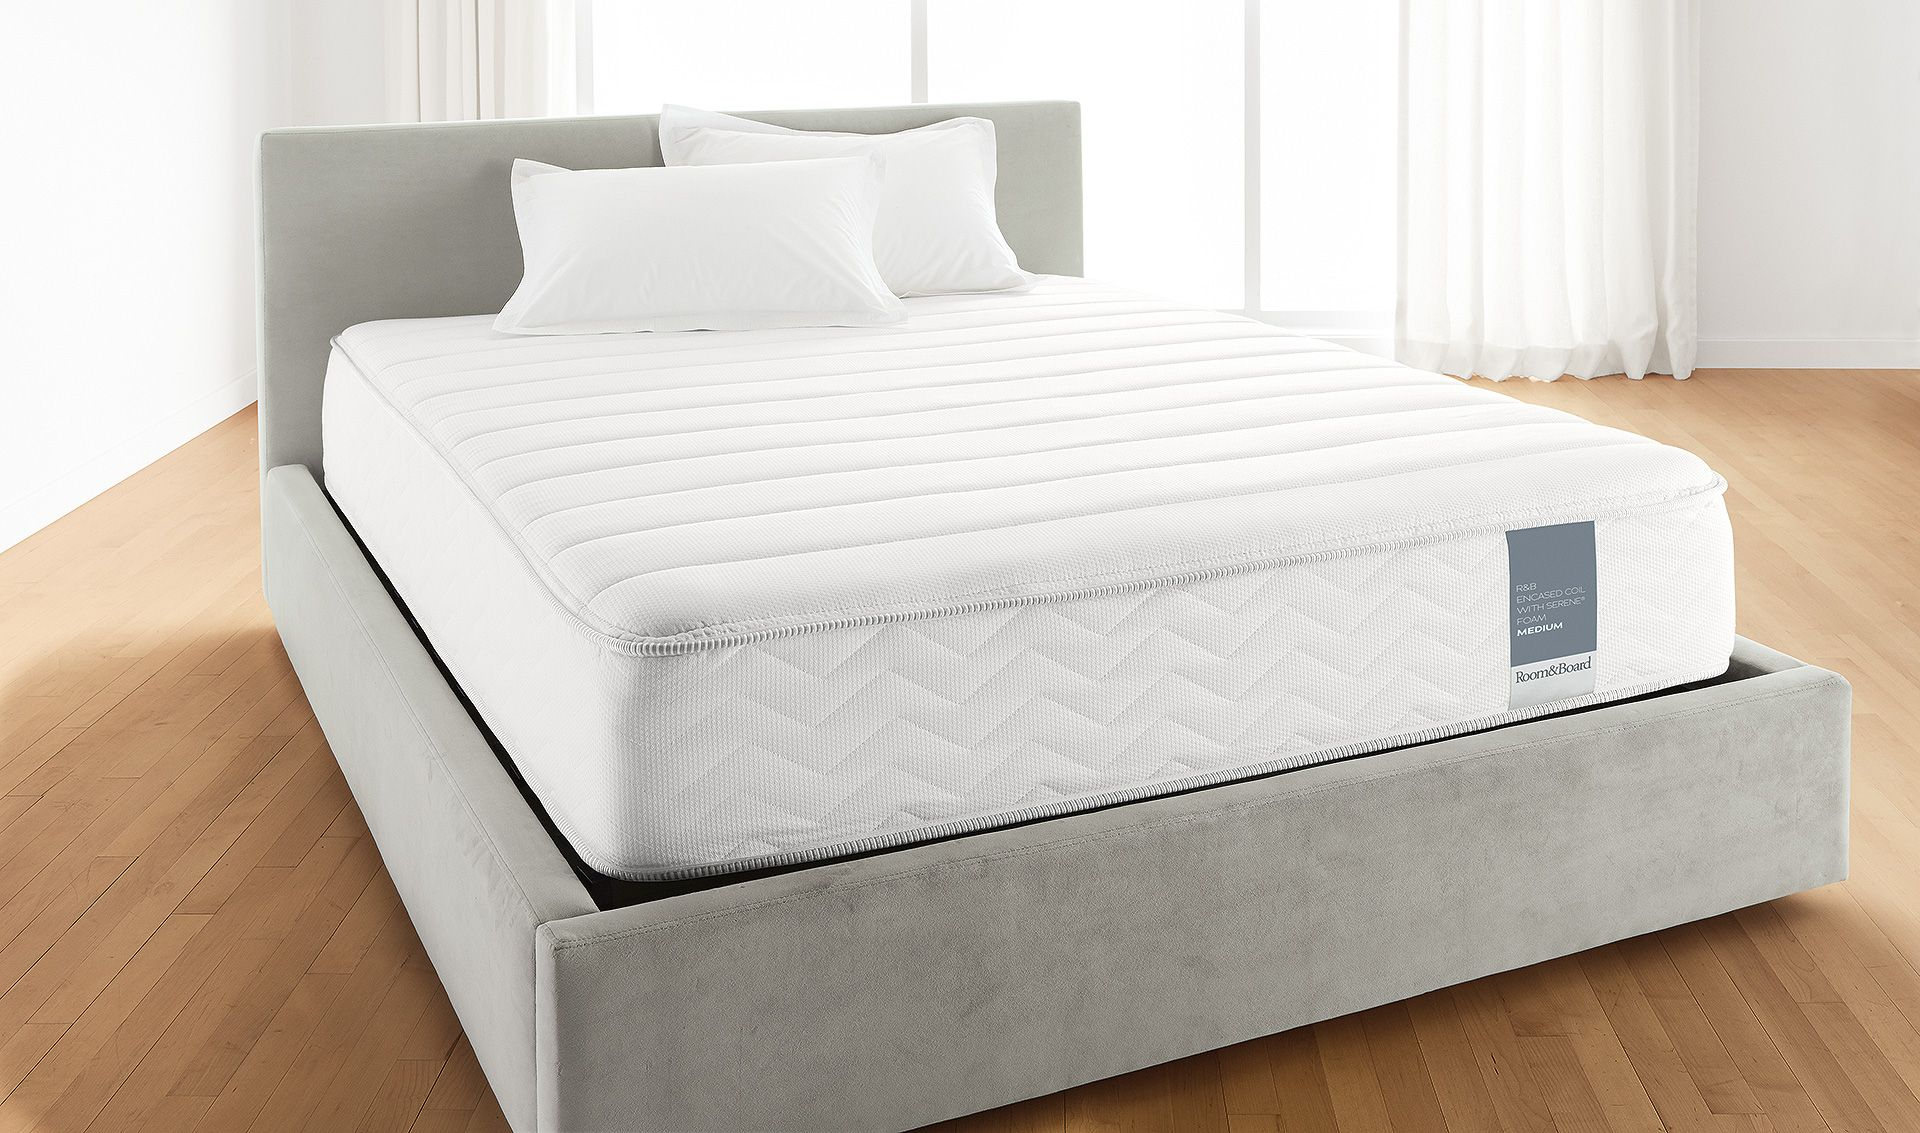 Rest Easy With Serene Foam Mattress From Mattress Redecorate Bedroom Foam Mattress